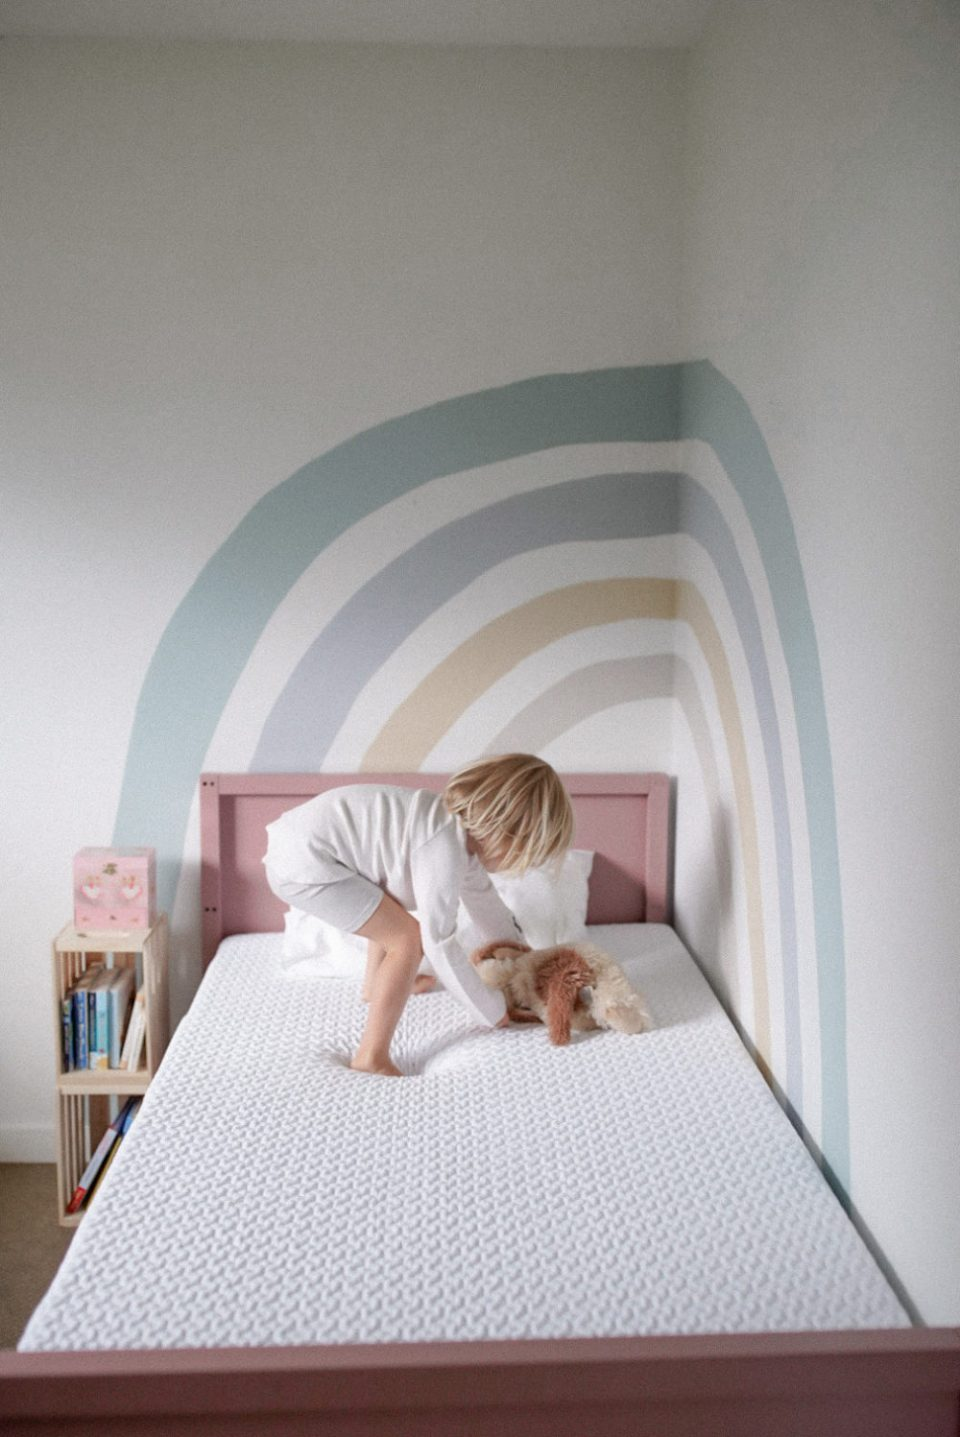 Little girls room with large rainbow painted on the wall